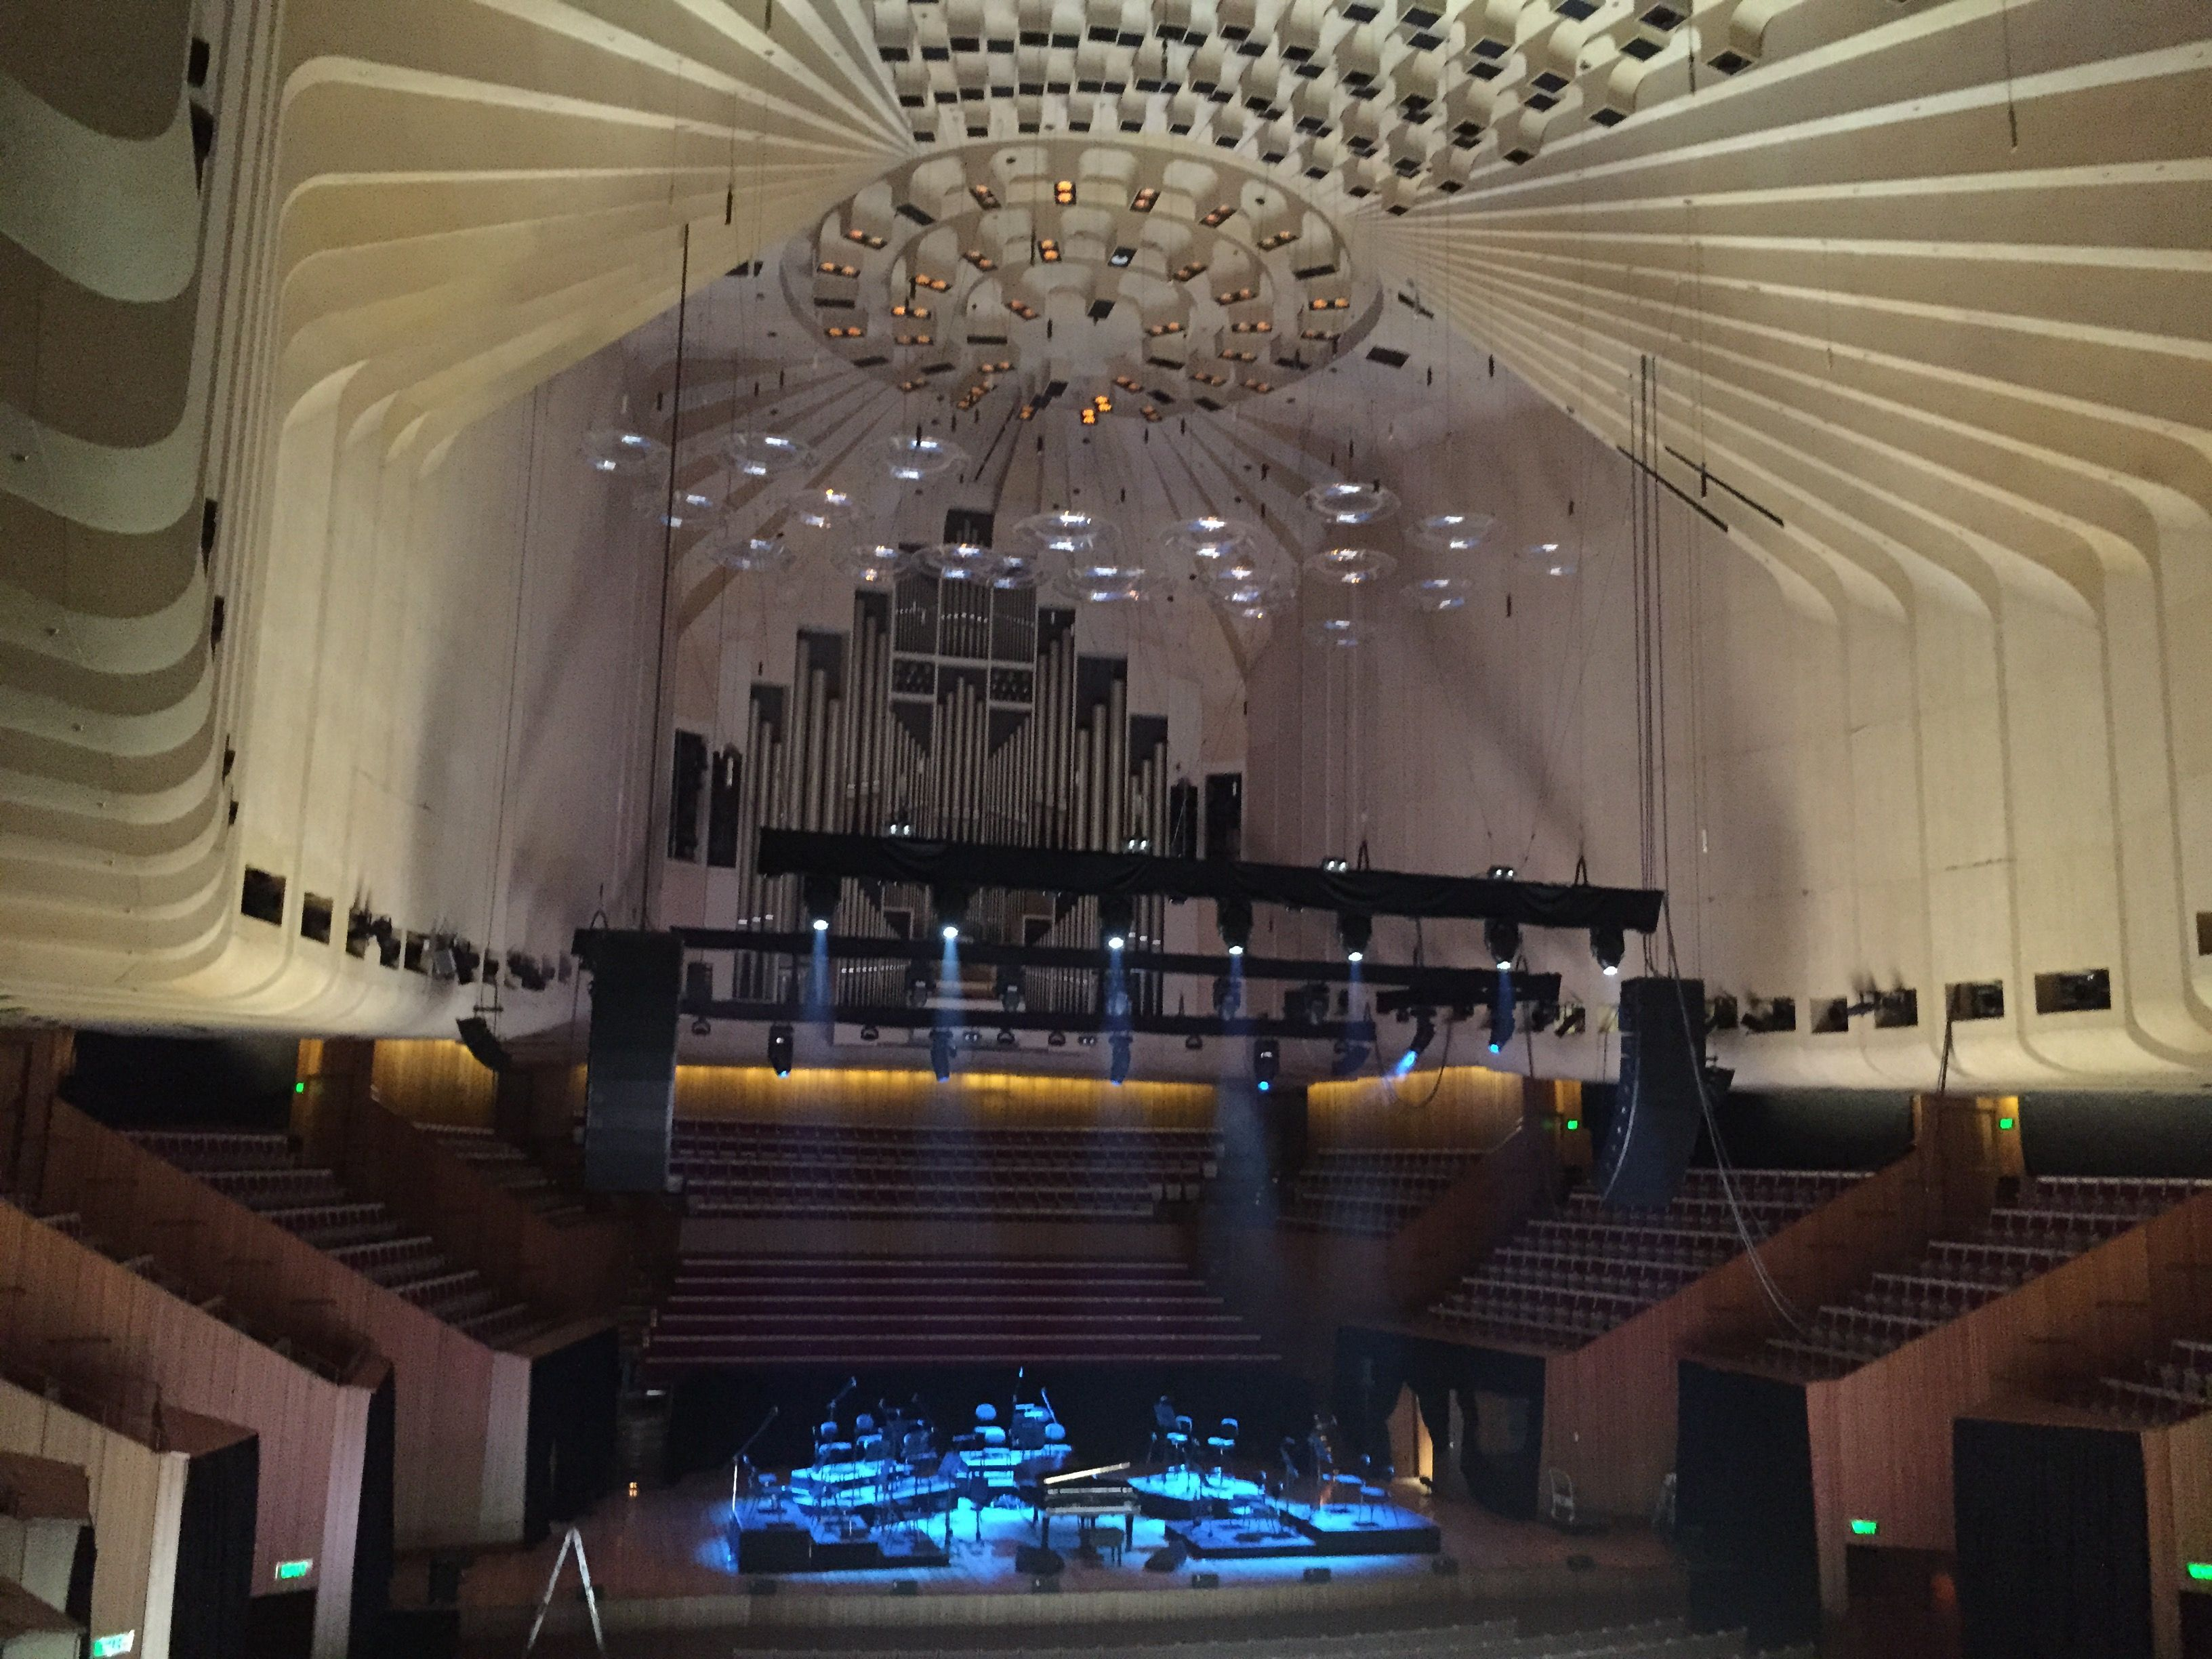 More amazing architecture from the #Sydney opera house